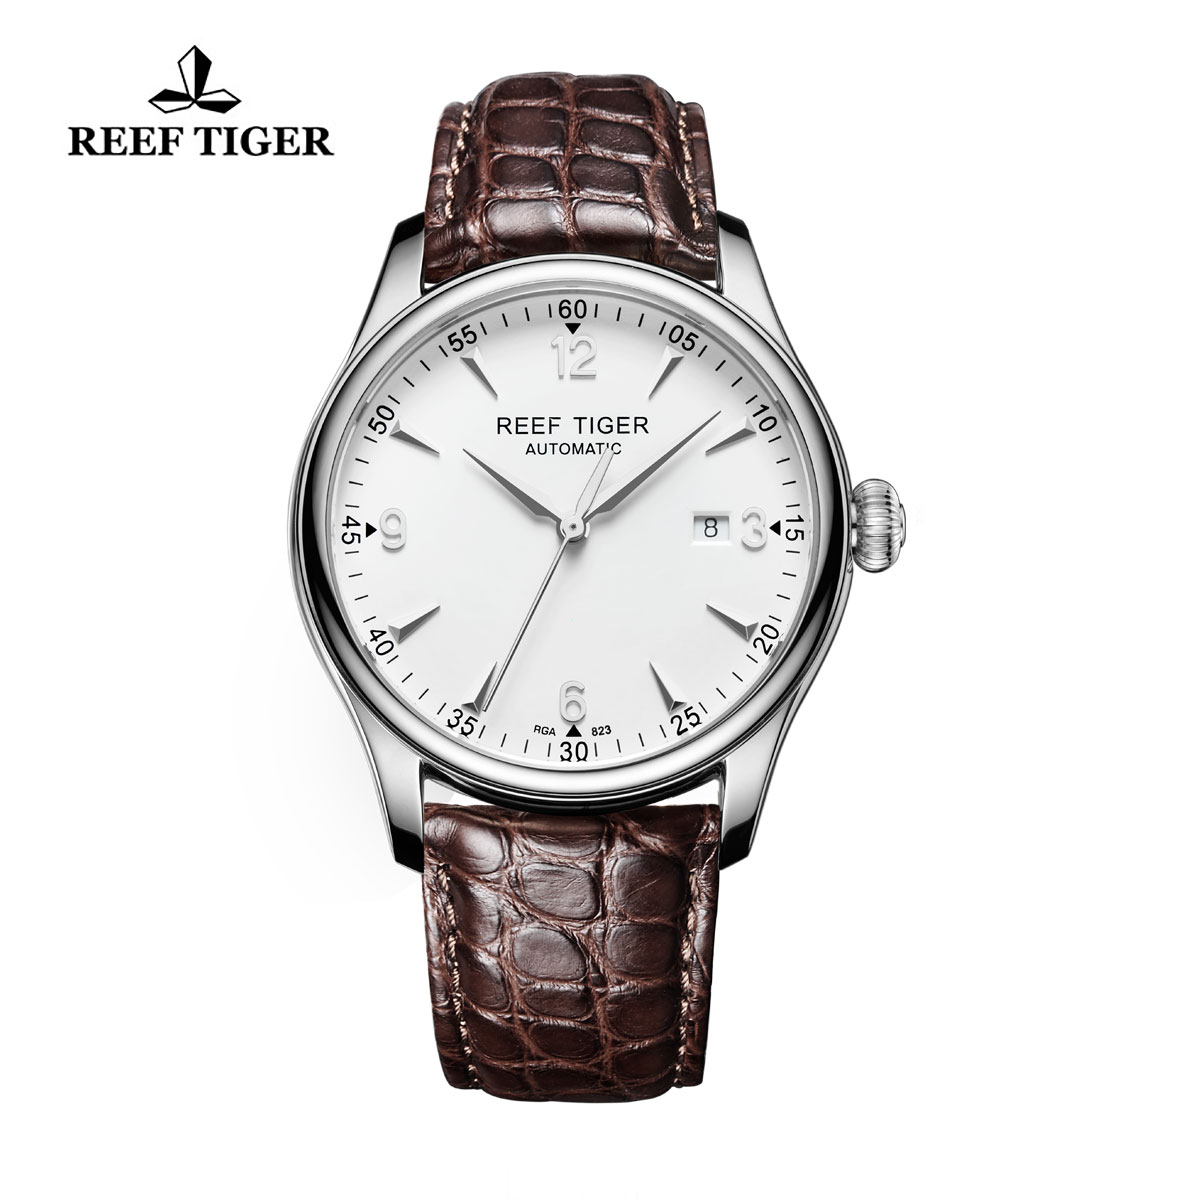 Reef Tiger Heritage Dress Automatic Watch White Dial Alligator Strap Steel Case RGA823-YWA